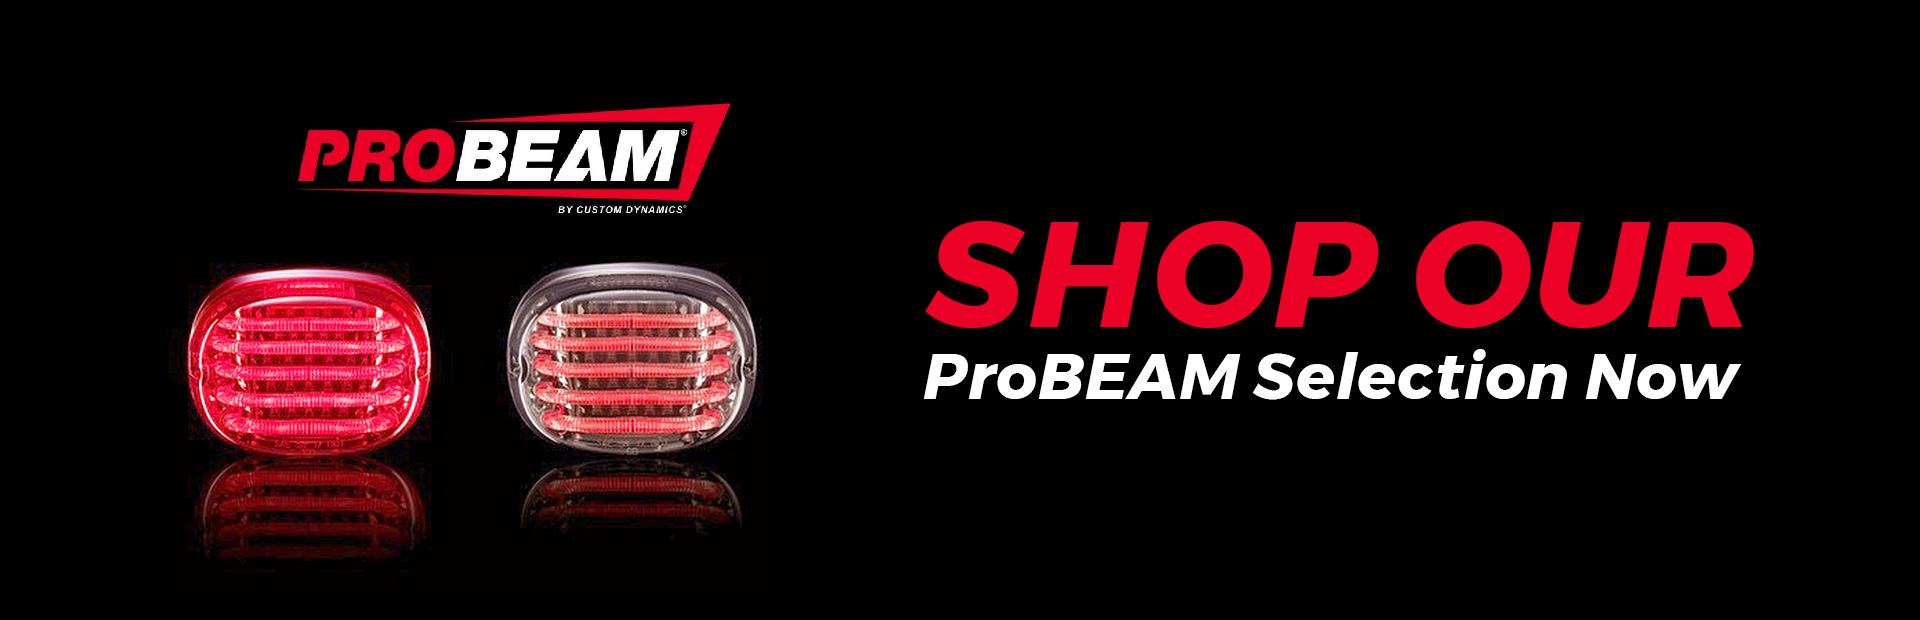 Click here to browse our ProBEAM models now!